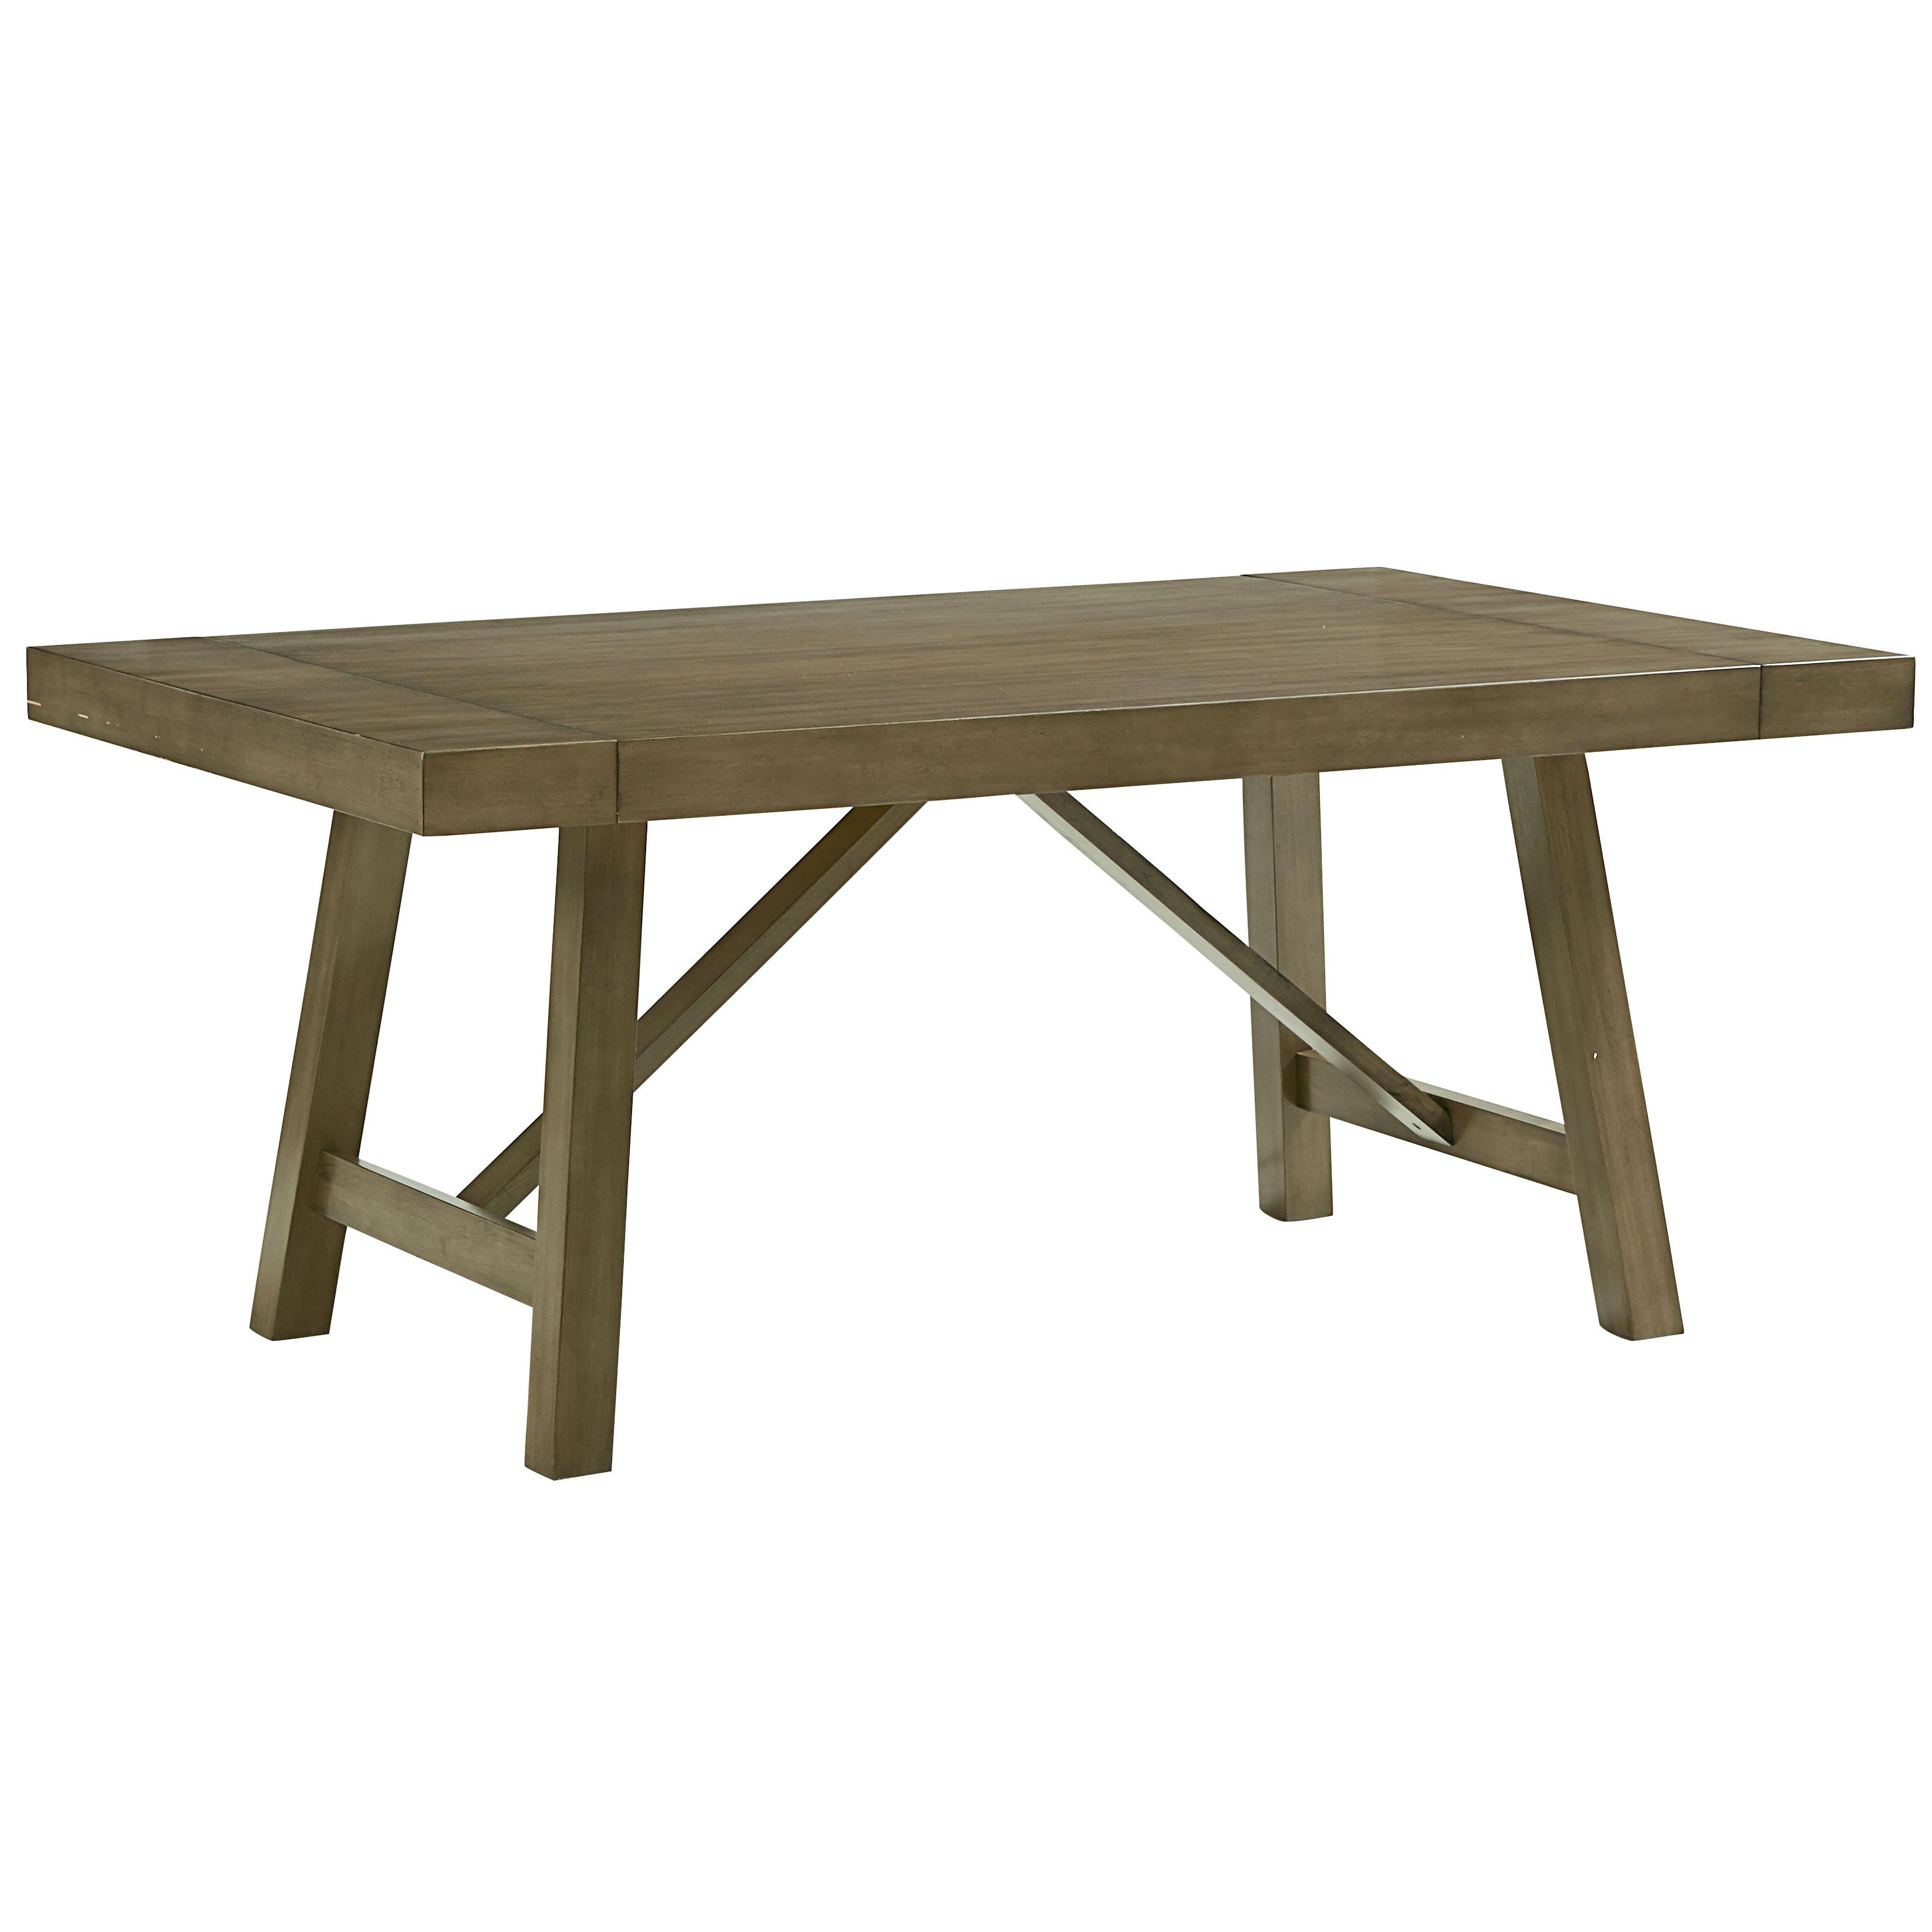 Standard Furniture Omaha Grey Trestle Table - Item Number: 16681